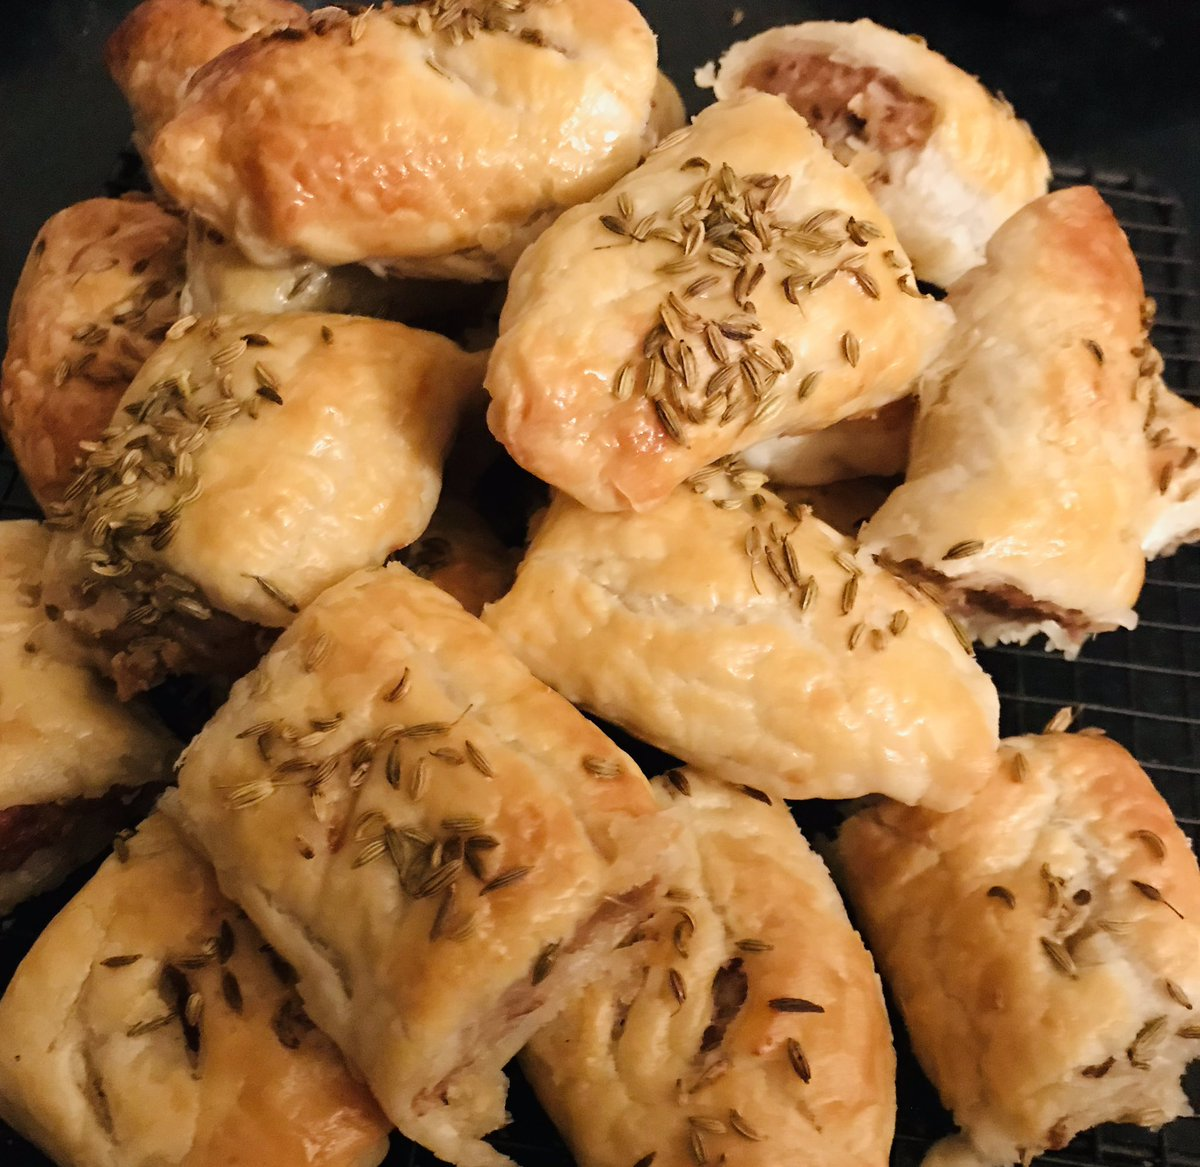 Channeling my mum today, sausage rolls with grated apple 🍎 in the mix. #keepcooking